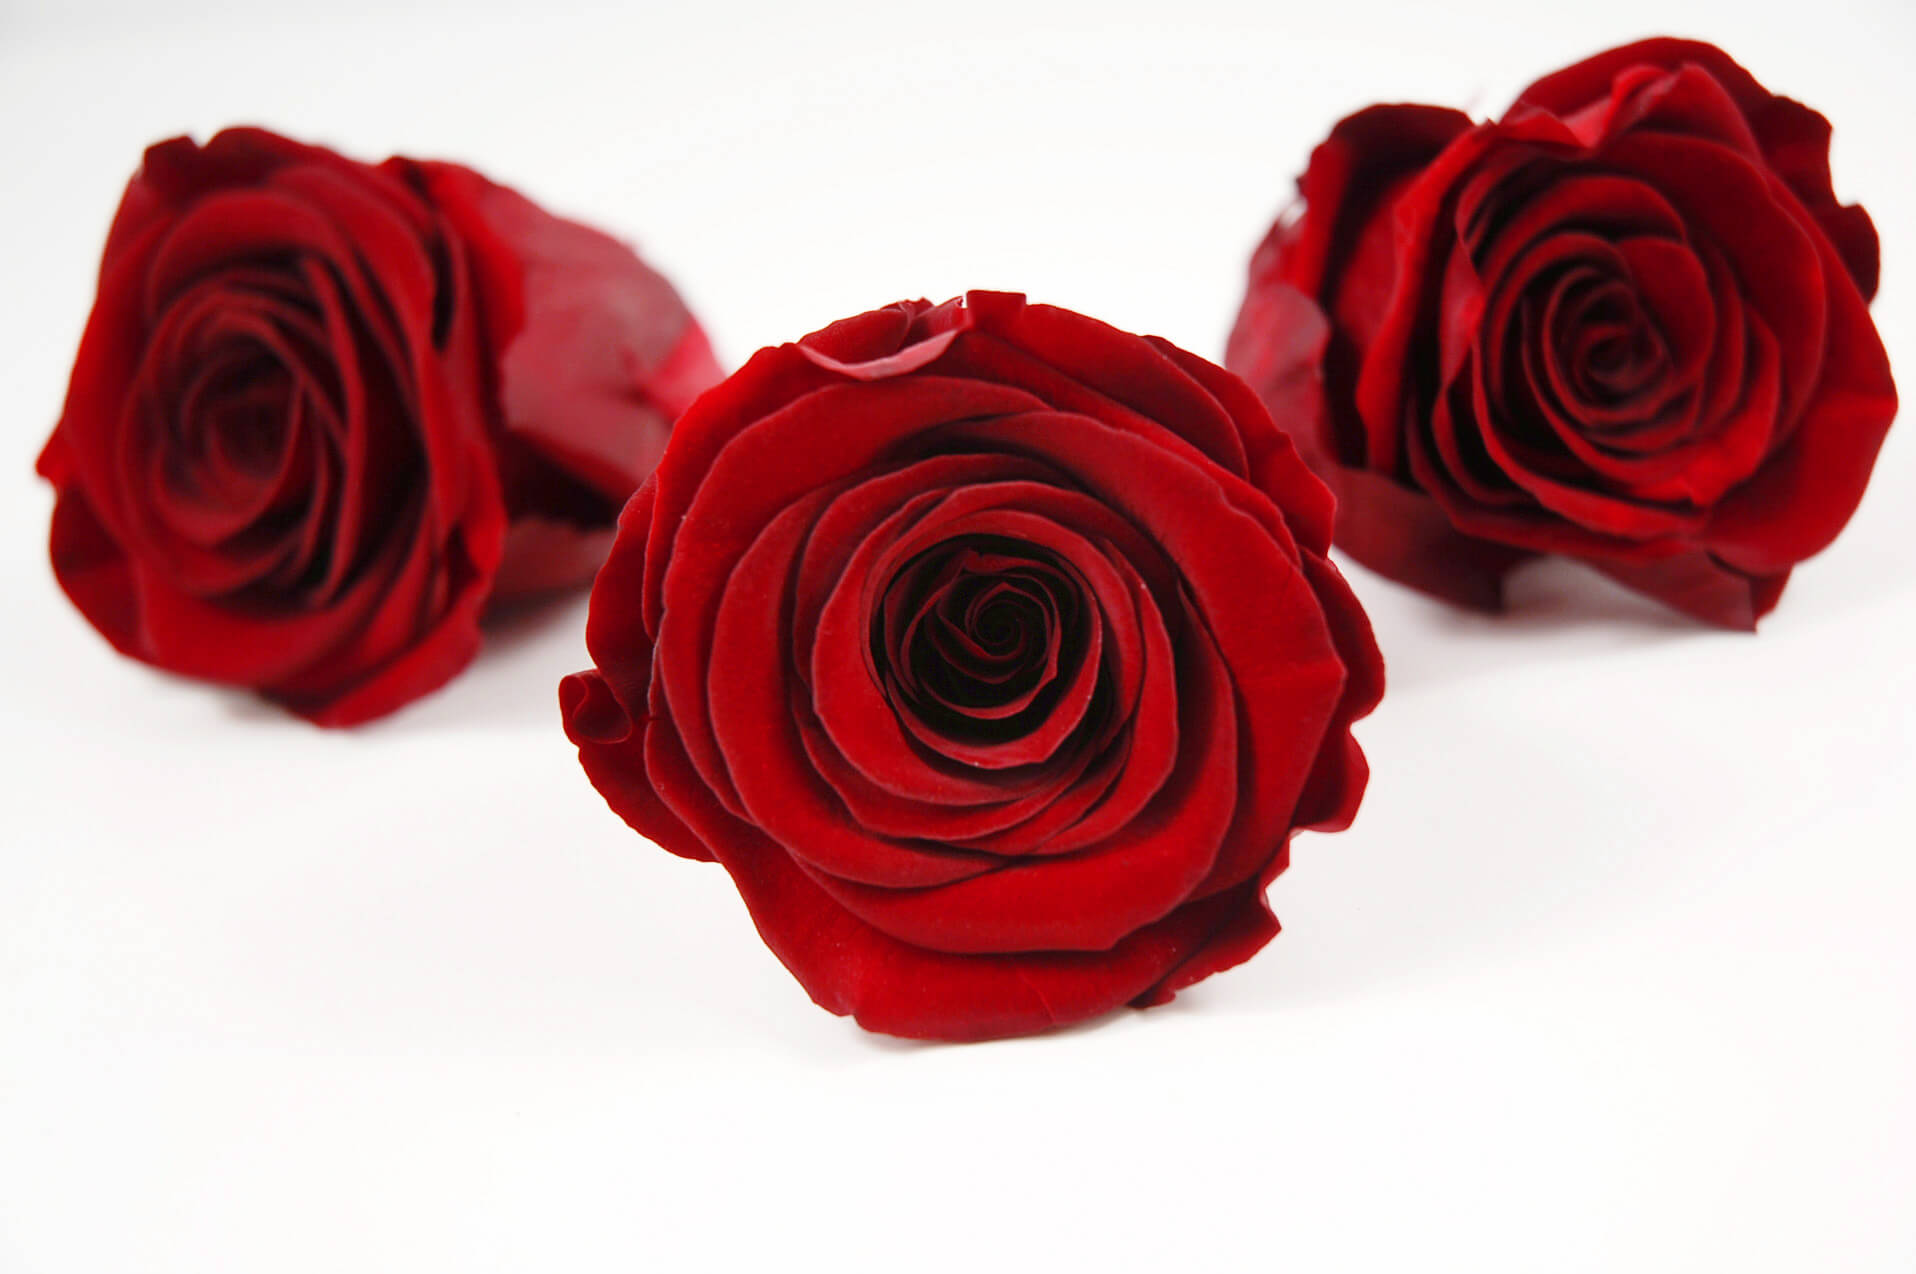 Preserved Roses Red 2.5in (6 rose heads)